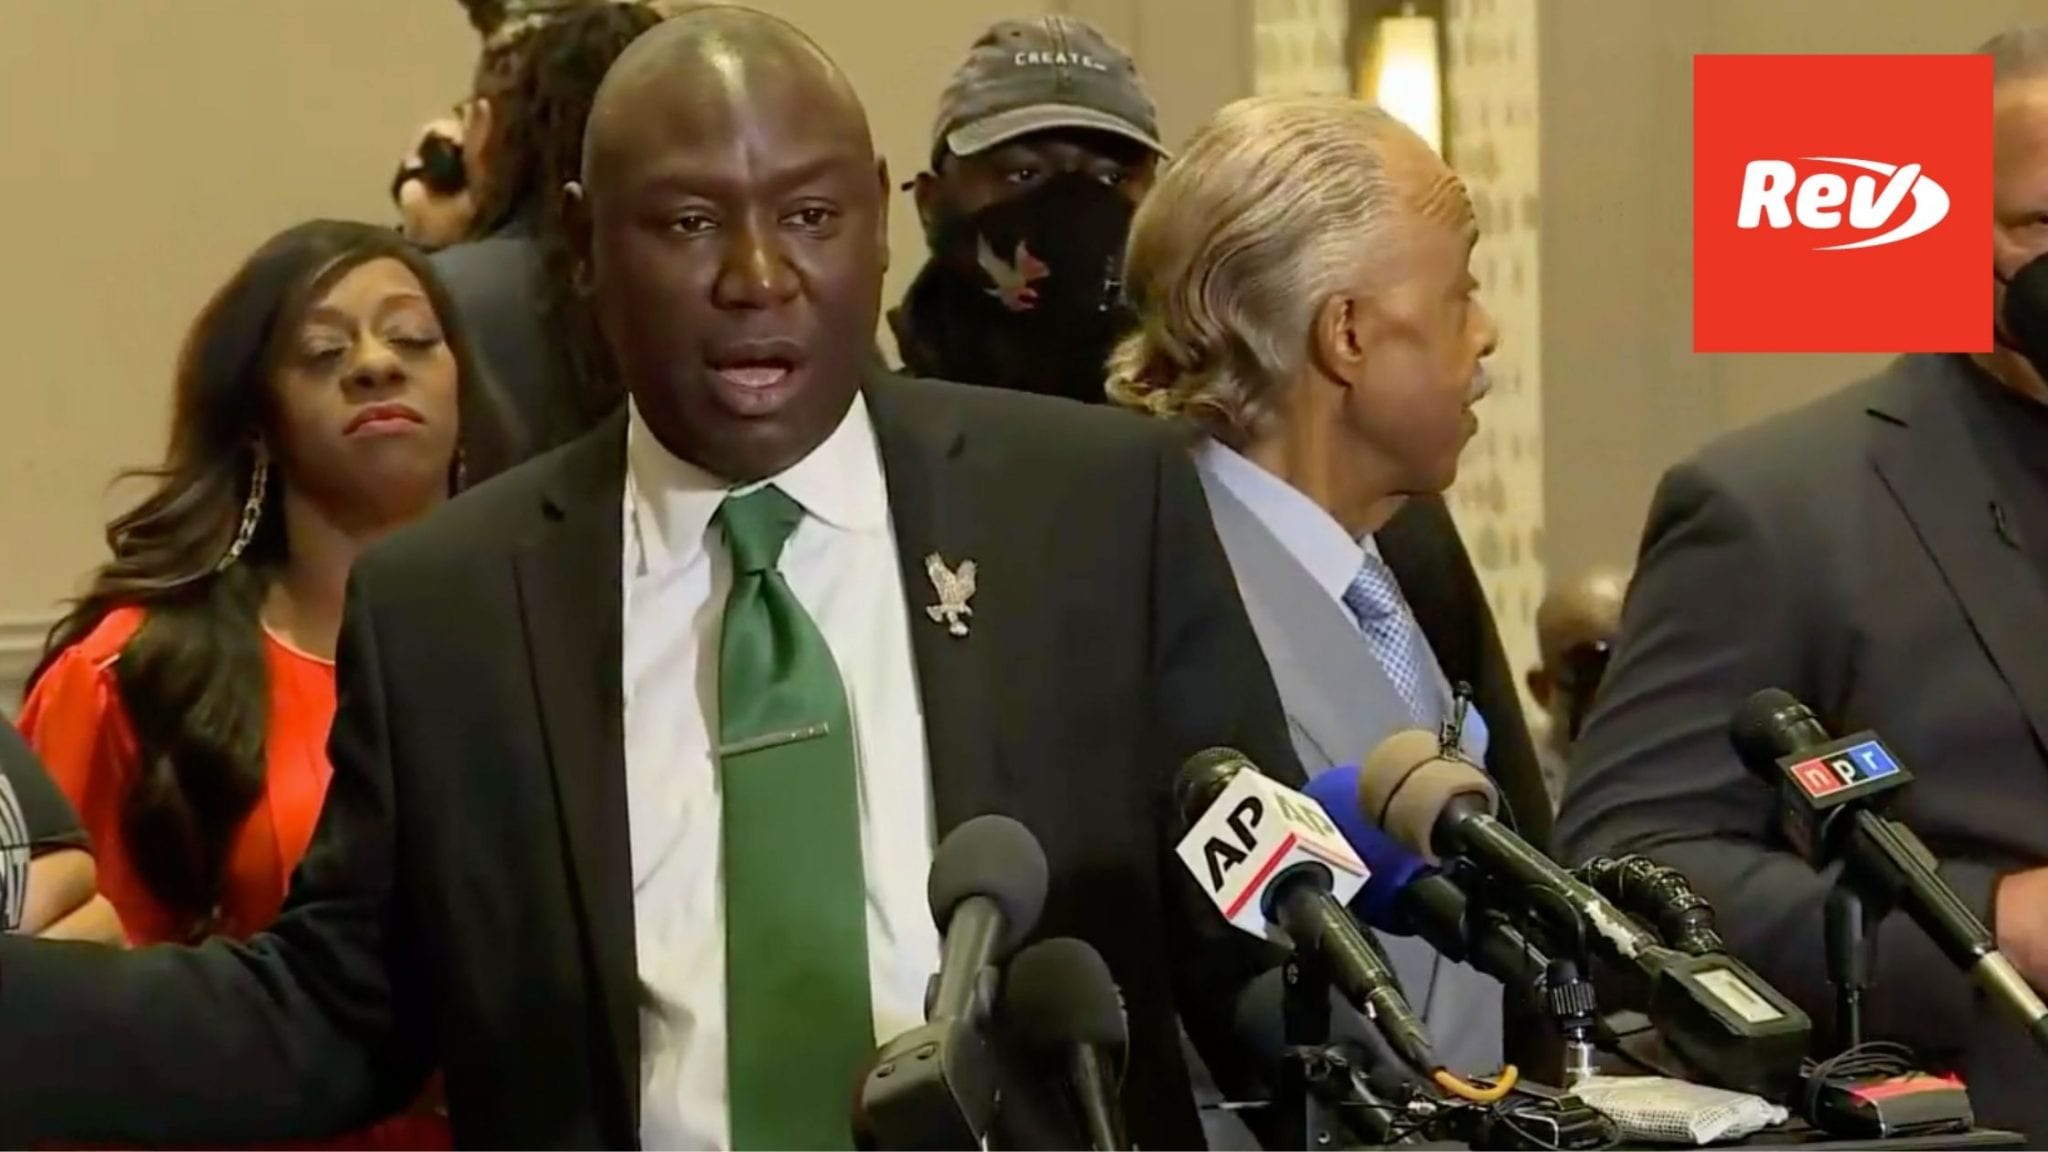 Ben Crump, George Floyd Family Press Conference Transcript After Chauvin Verdict